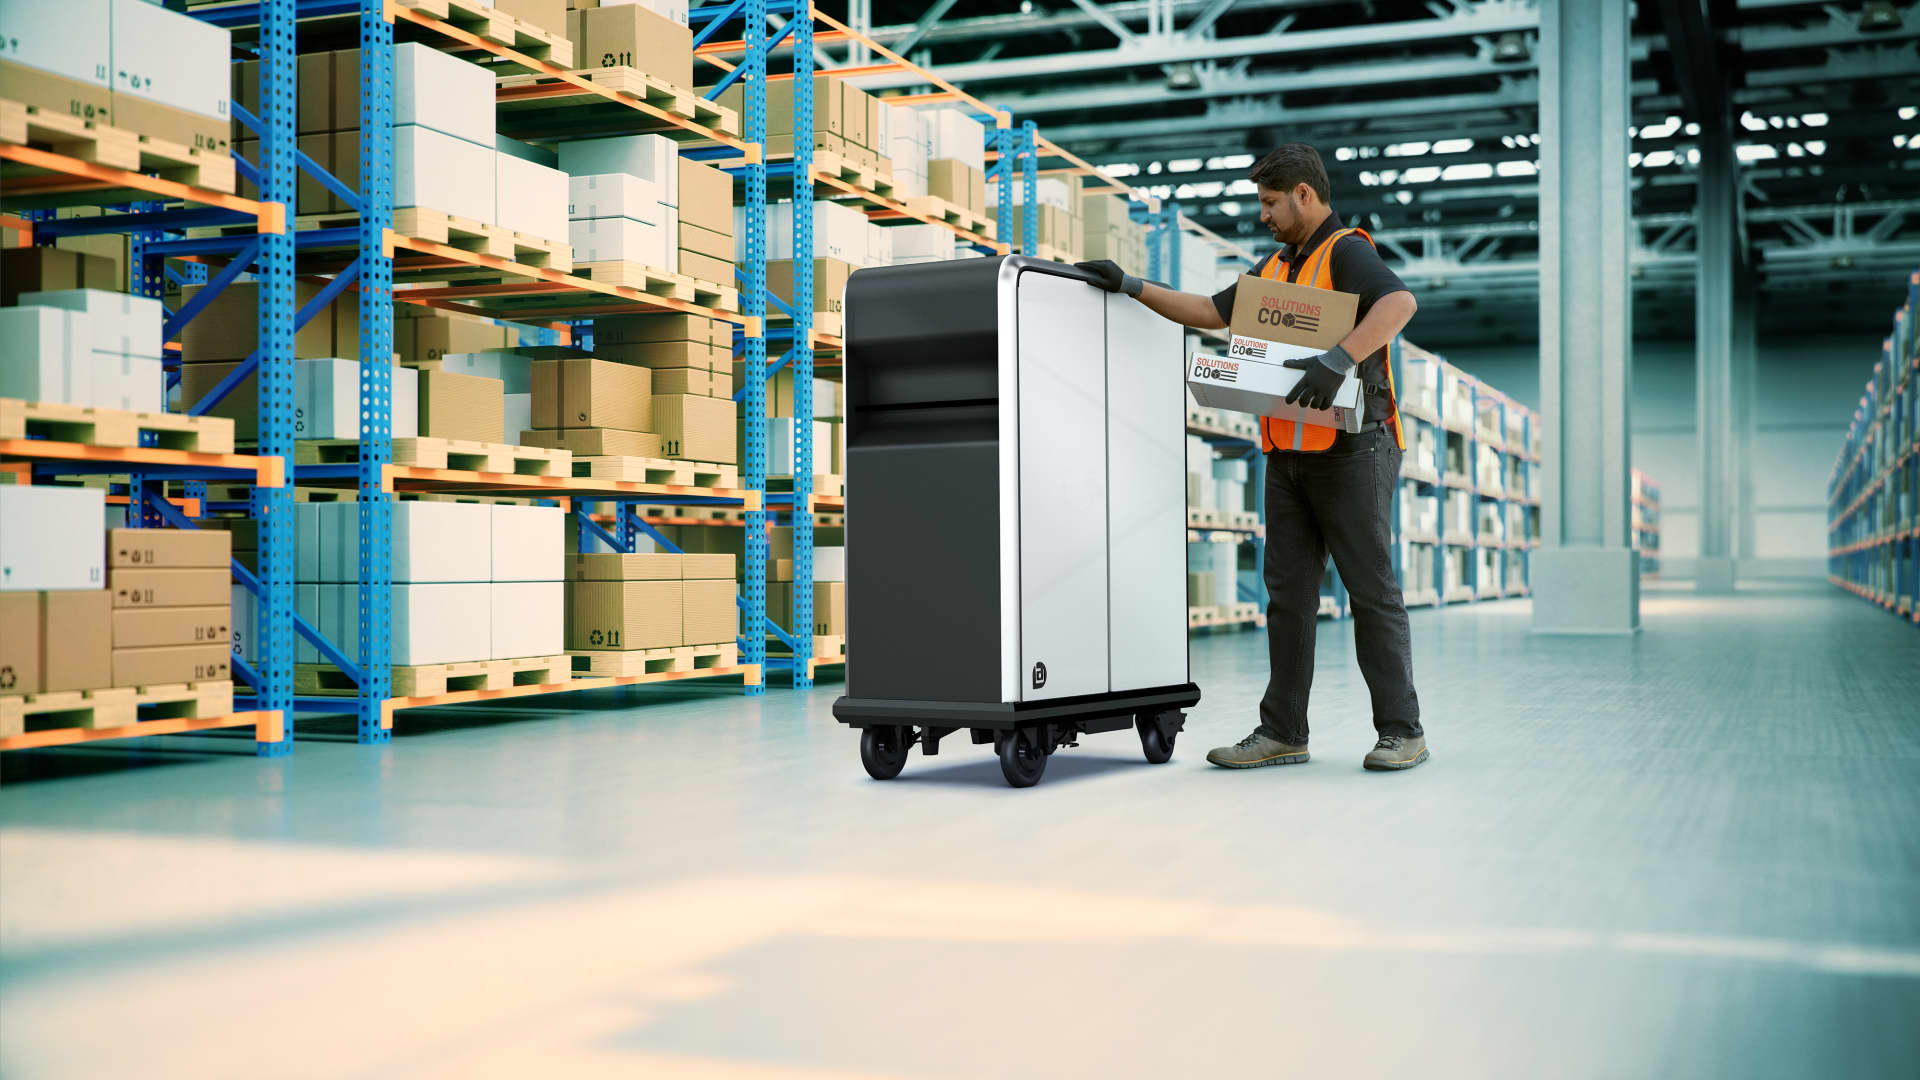 The first product from GM's BrightDrop will be the EP1, will be a propulsion-assisted, electric pallet developed to easily move goods over short distances – for example, from the delivery vehicle to the customer's front door.